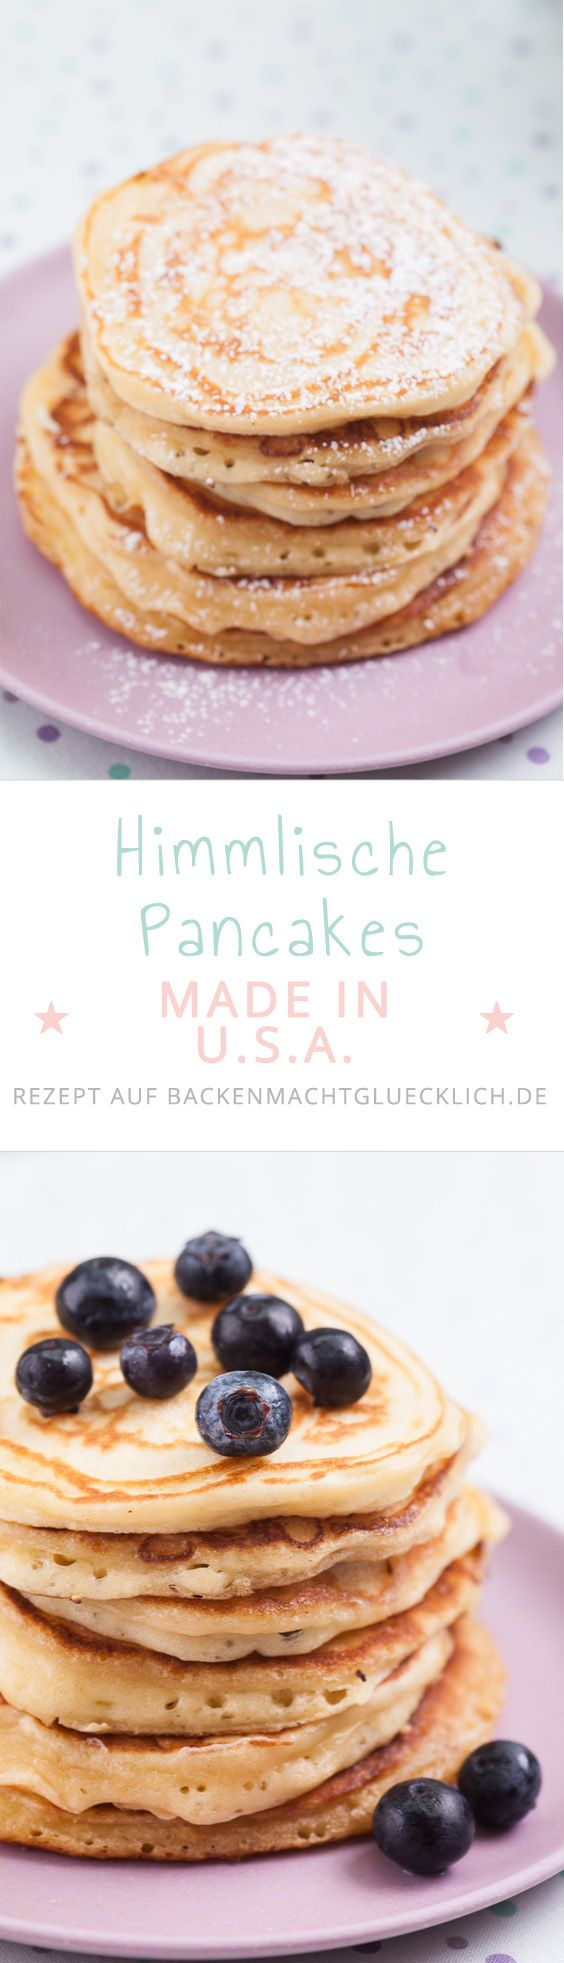 check out pancakes amerikanische pfannkuchen it 39 s so easy to make butter rezepte and pancakes. Black Bedroom Furniture Sets. Home Design Ideas